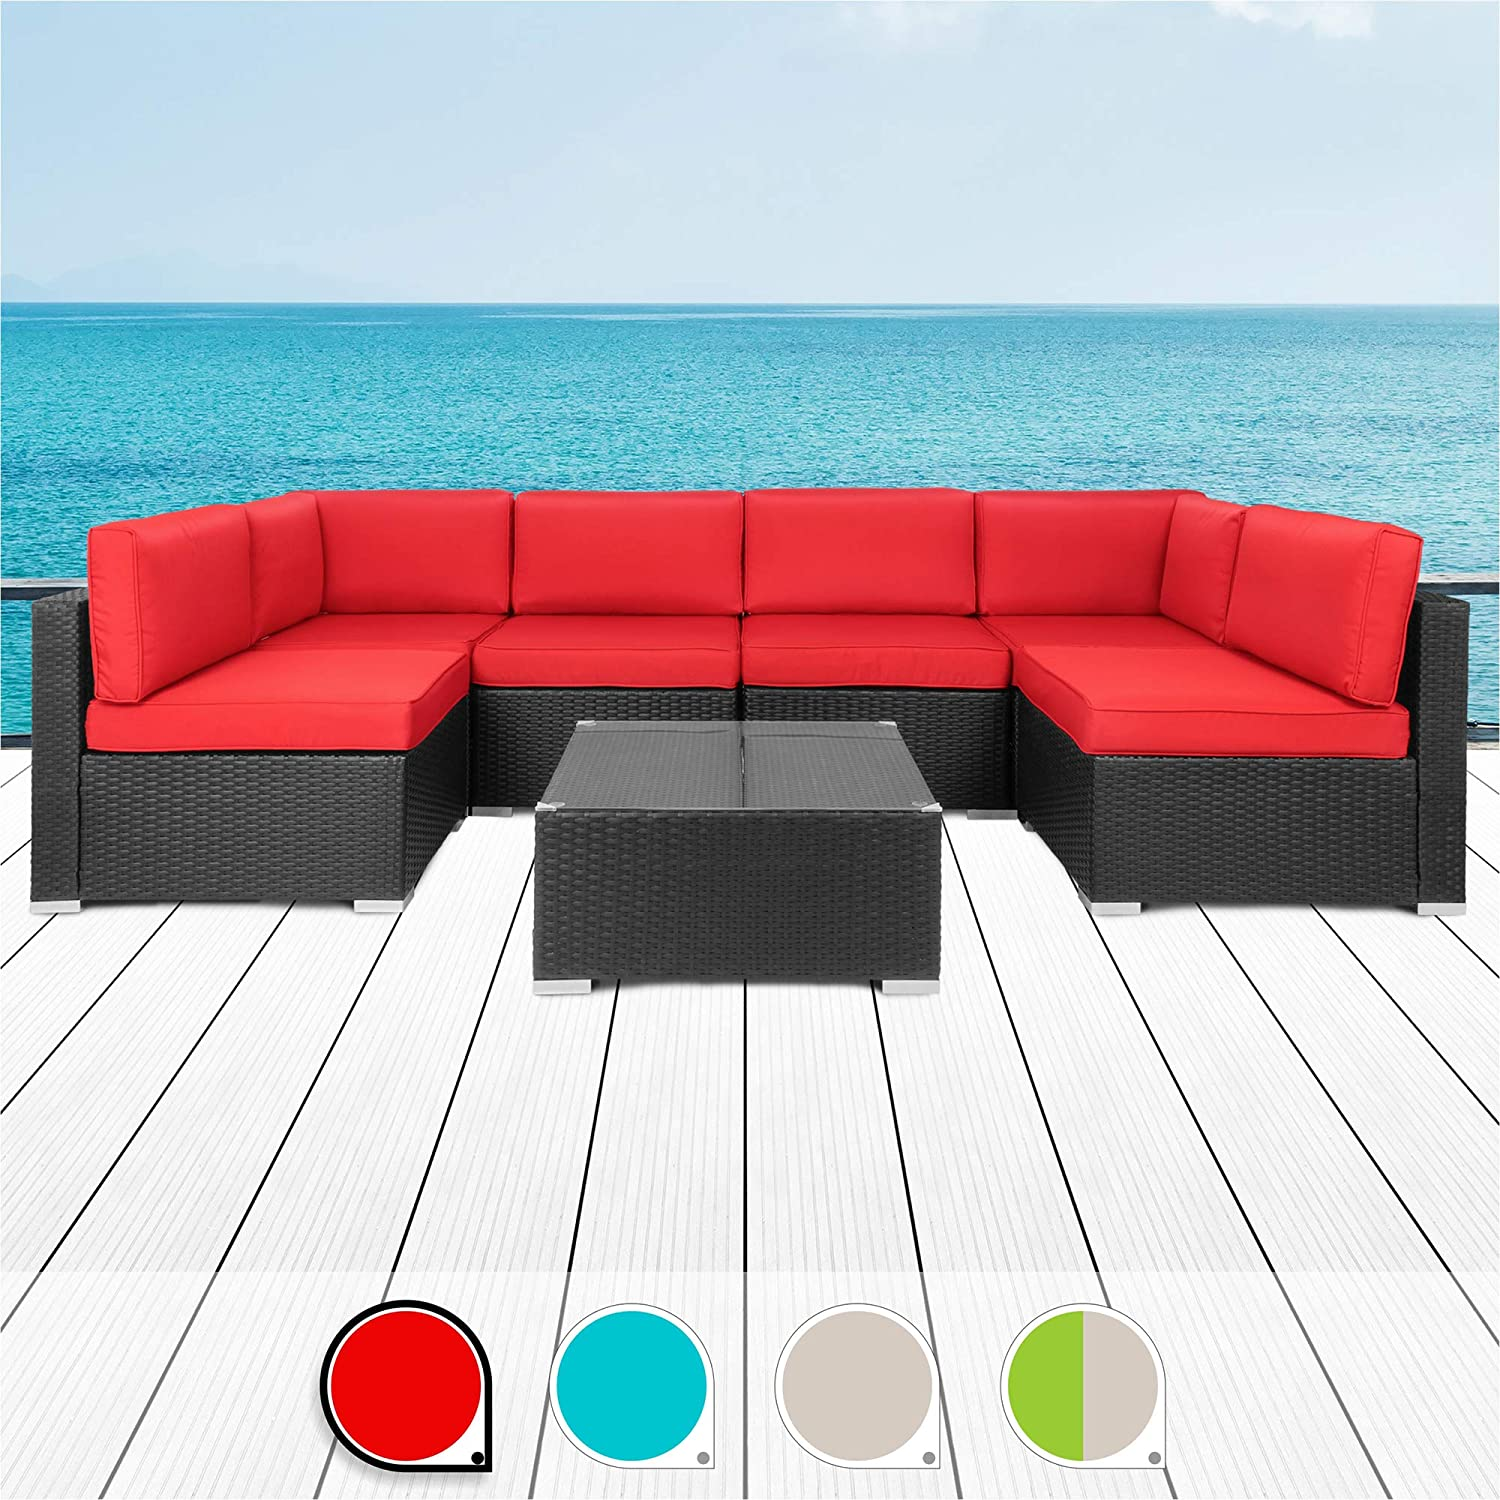 Miraculous Walsunny 7Pcs Patio Outdoor Furniture Sets All Weather Rattan Sectional Sofa With Tea Tablewashable Couch Cushions Black Rattan Red Home Interior And Landscaping Sapresignezvosmurscom